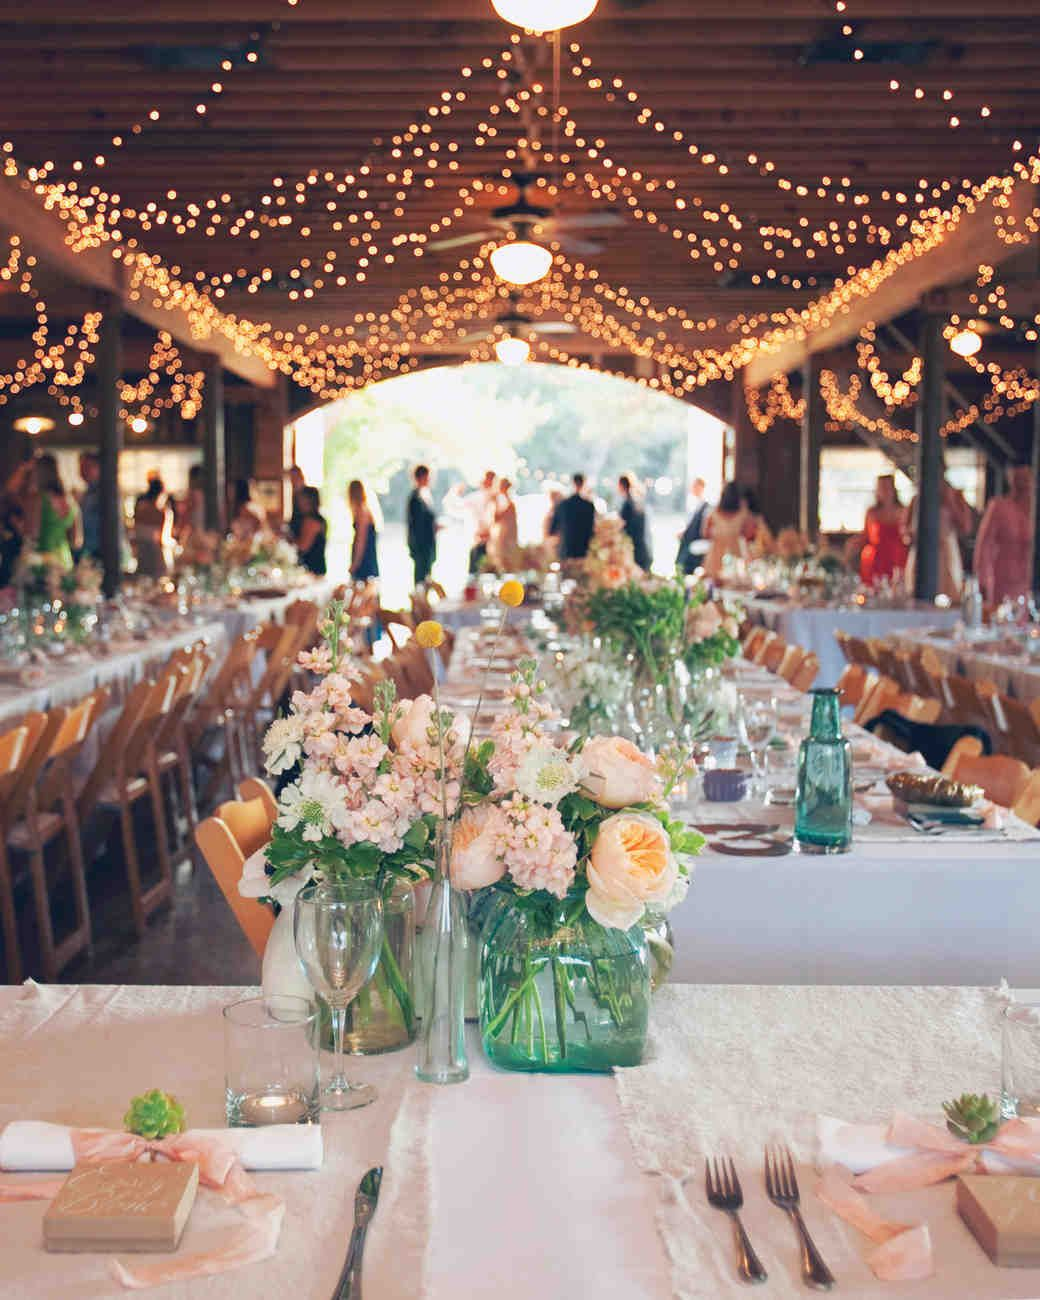 A Romantic Pastel-Colored DIY Wedding in a Barn in Texas | Pinterest ...